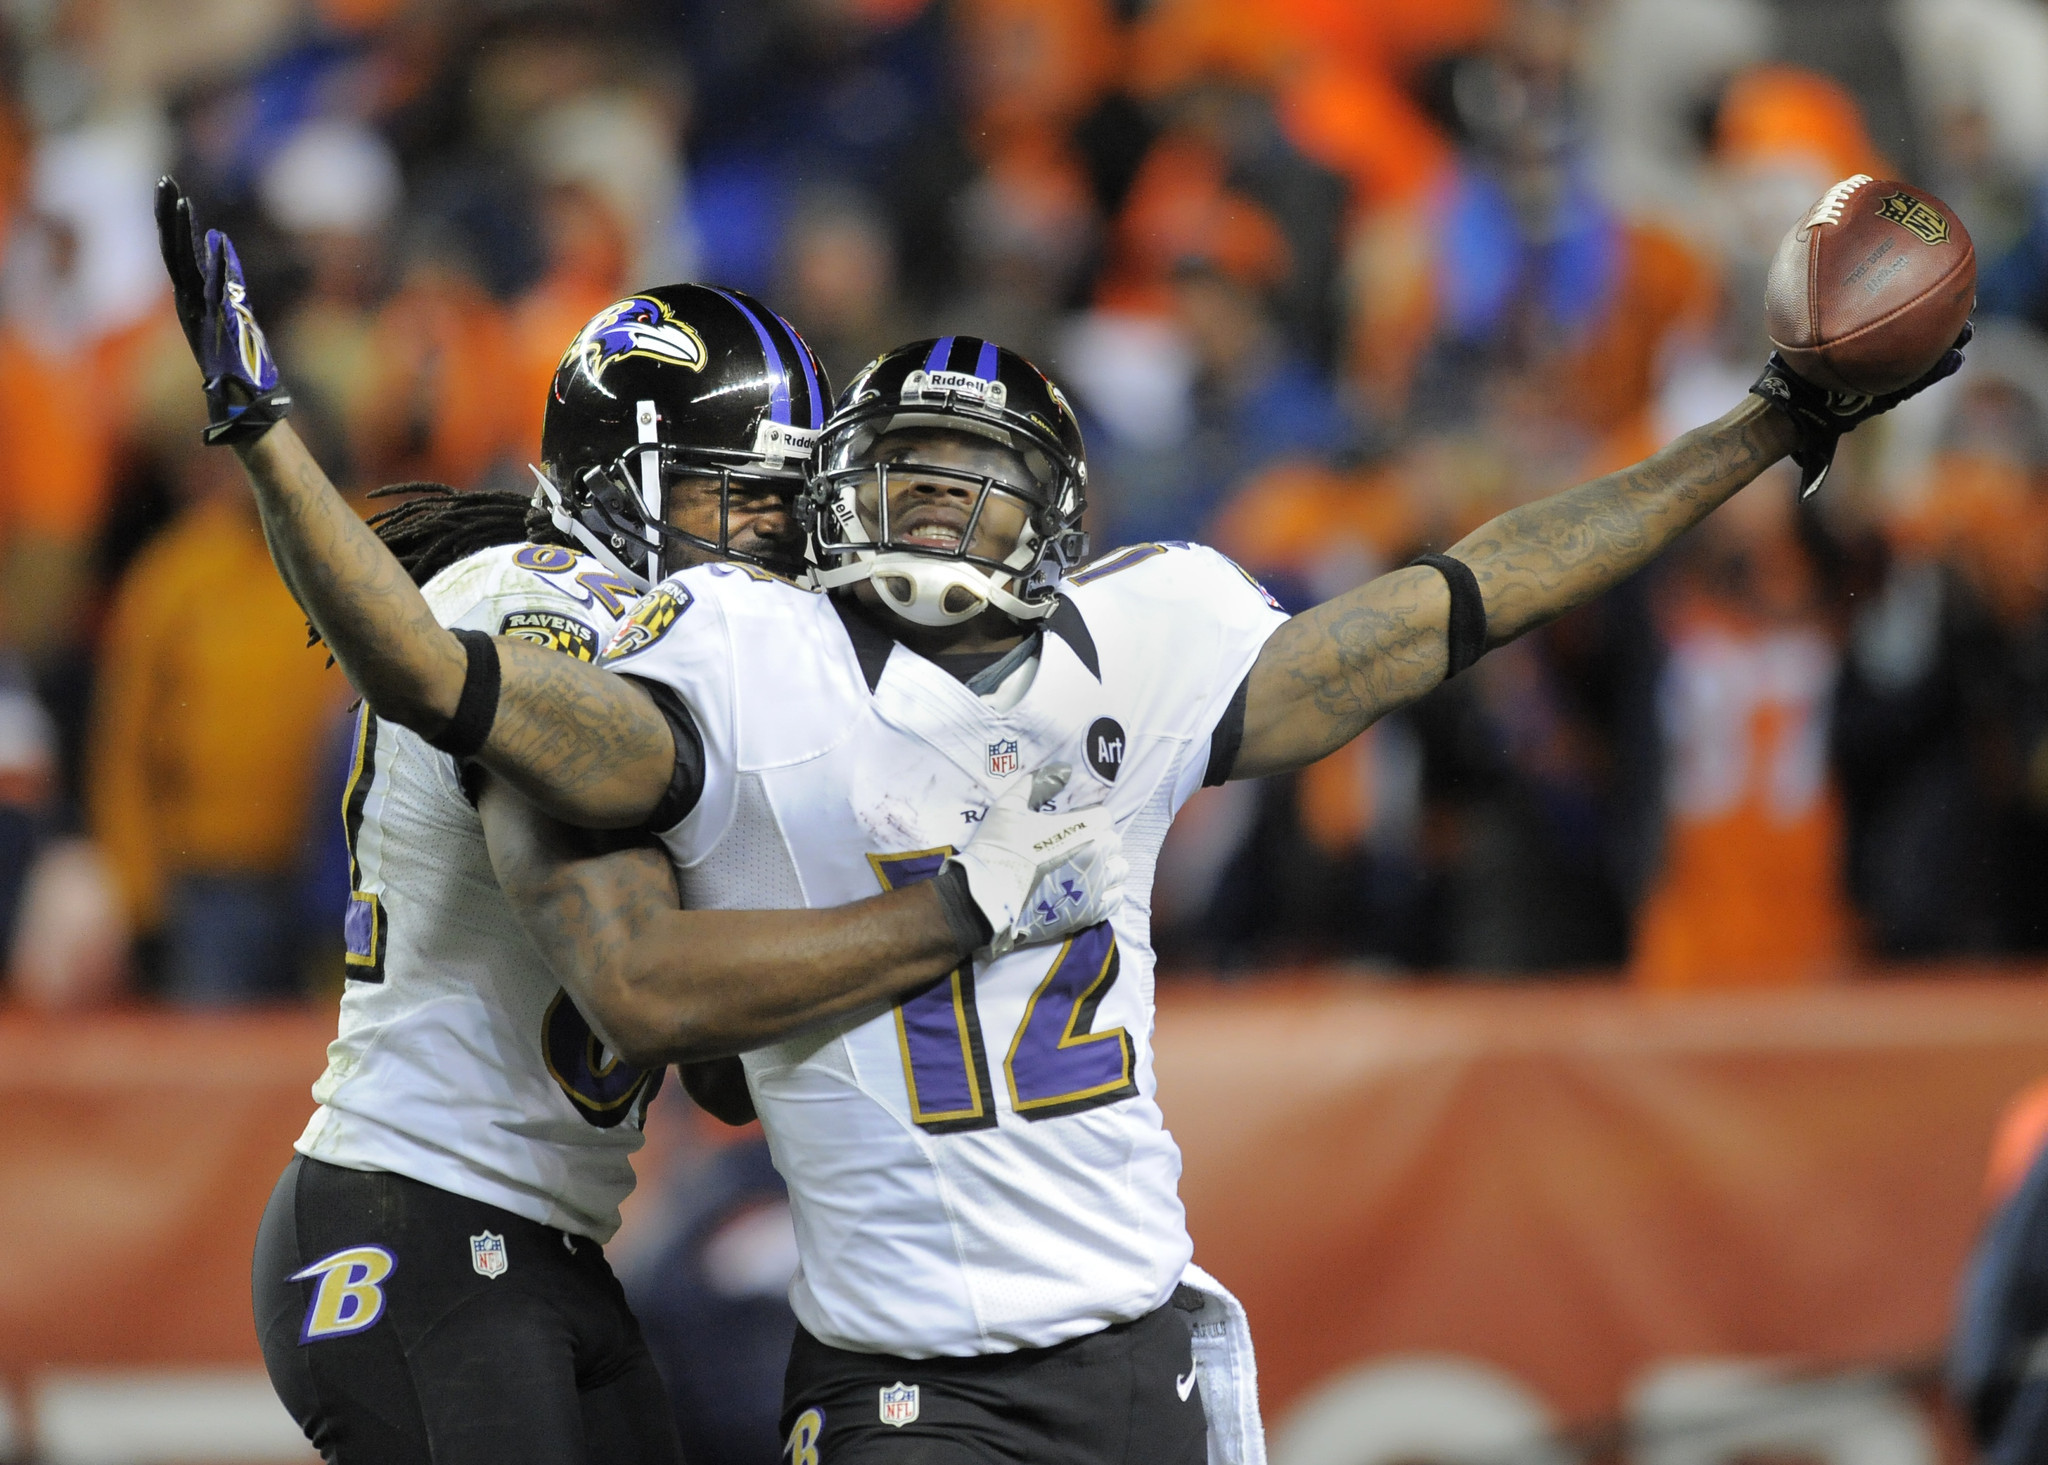 Ravens wide receivers Jacoby Jones, right, and Torrey Smith celebrate after Jones scored on a 70-yard touchdown to tie the game in the final minute of regulation. Kicker Justin Tucker won the game in the second quarter of overtime with a 47-yard field goal, giving the Ravens a 38-35 victory.